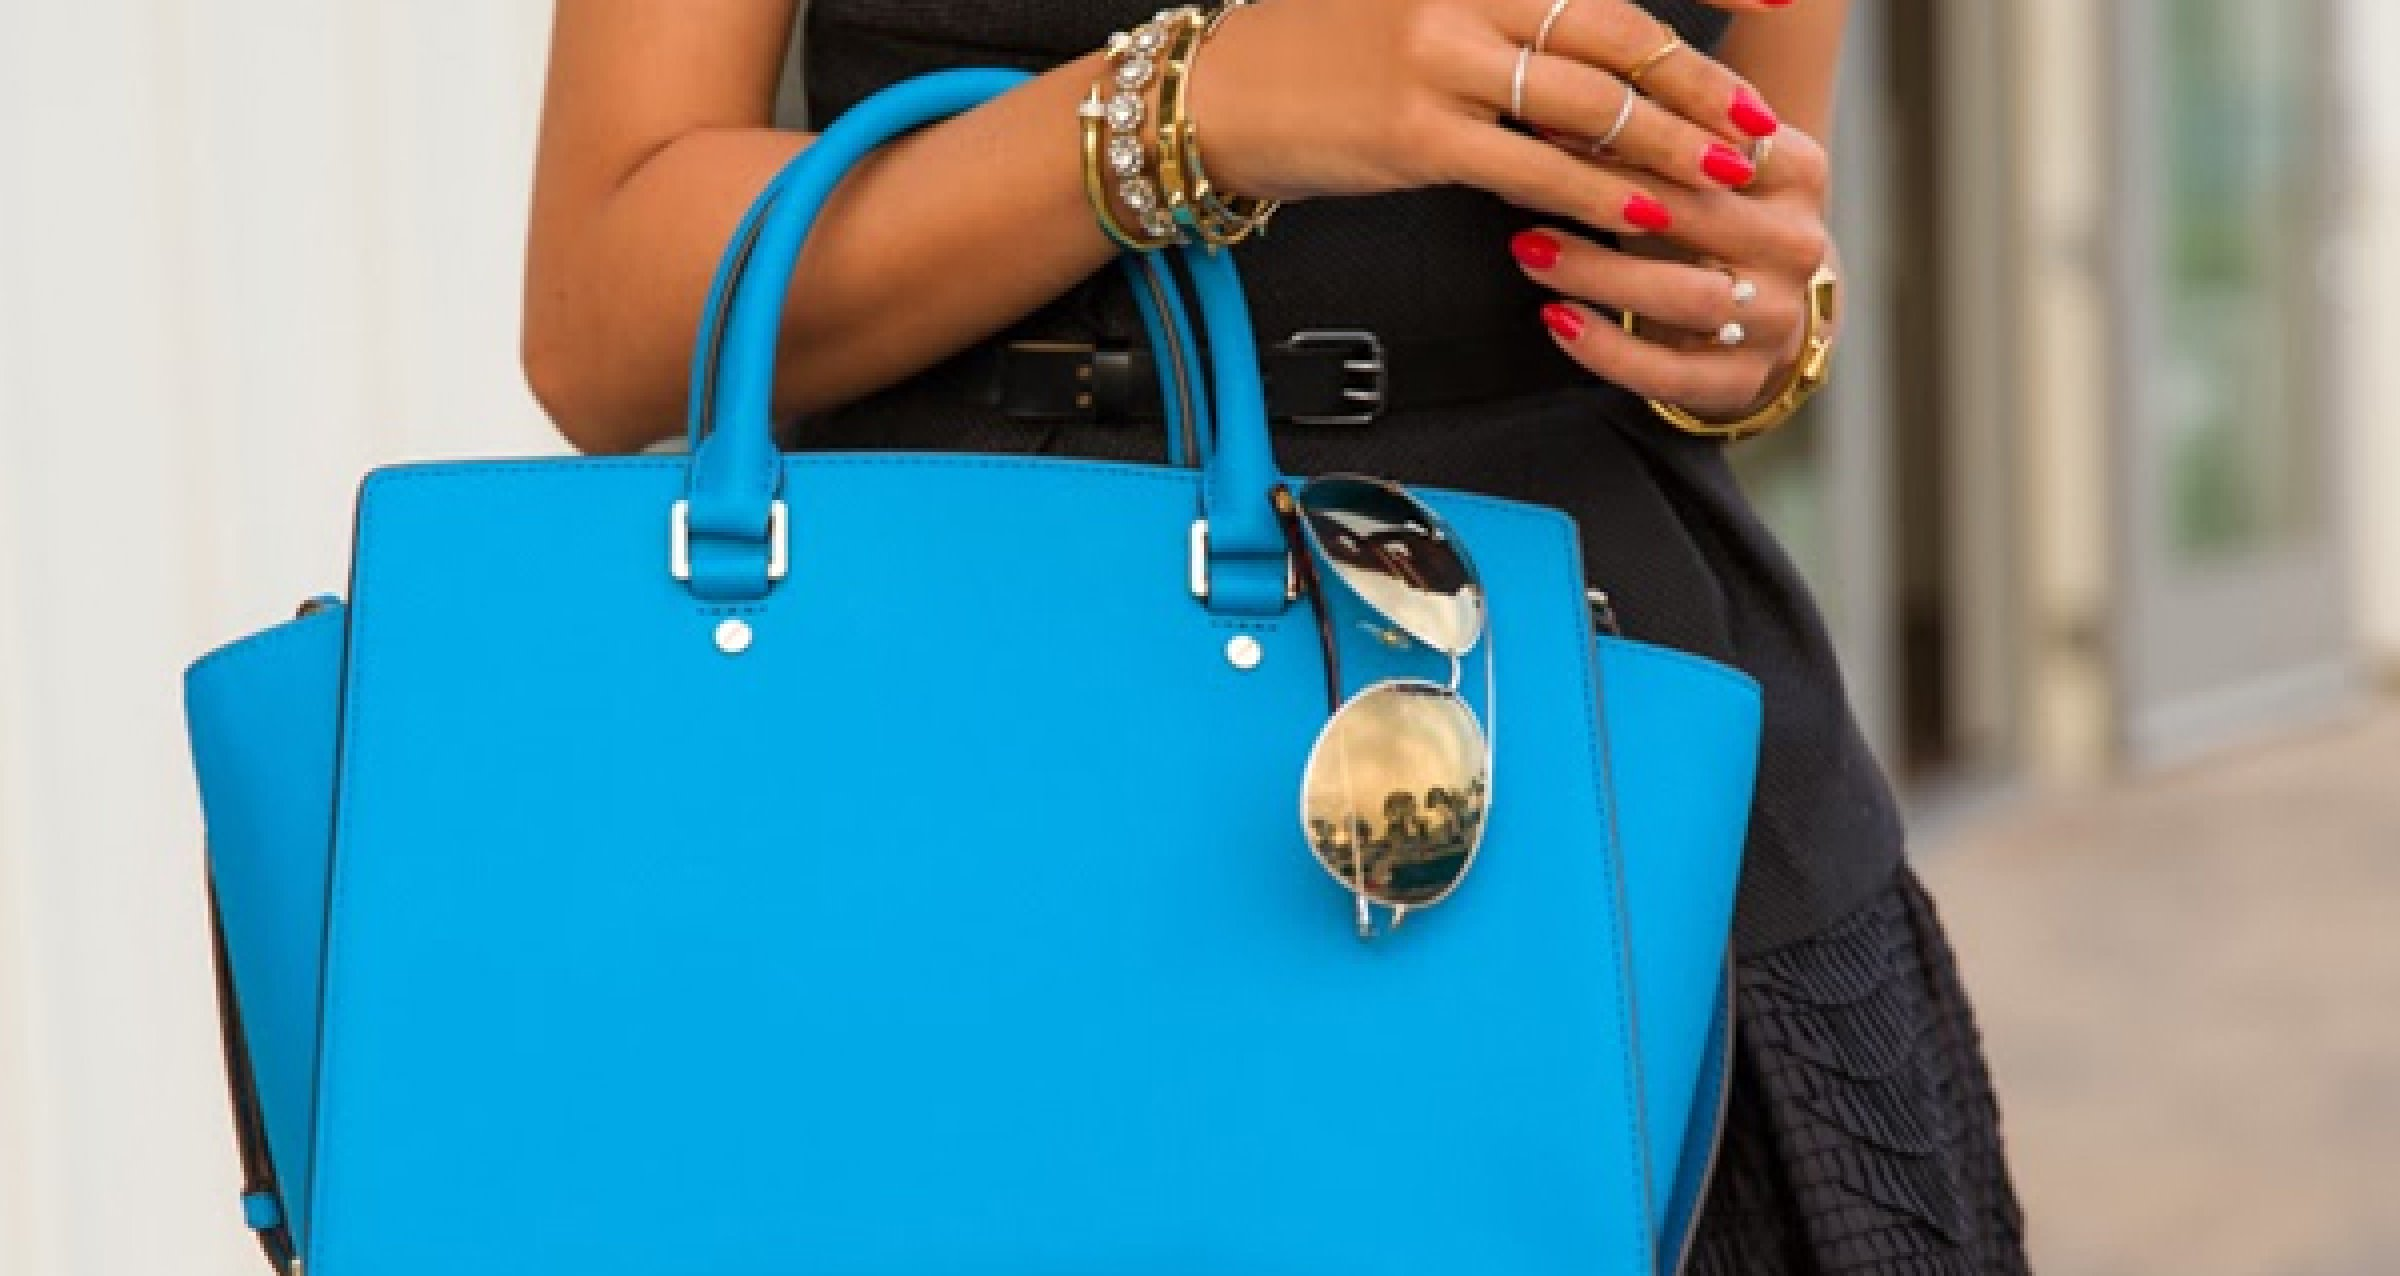 5 handbags to get you through every occasion - Monroe and Main All occasion fashion handbag